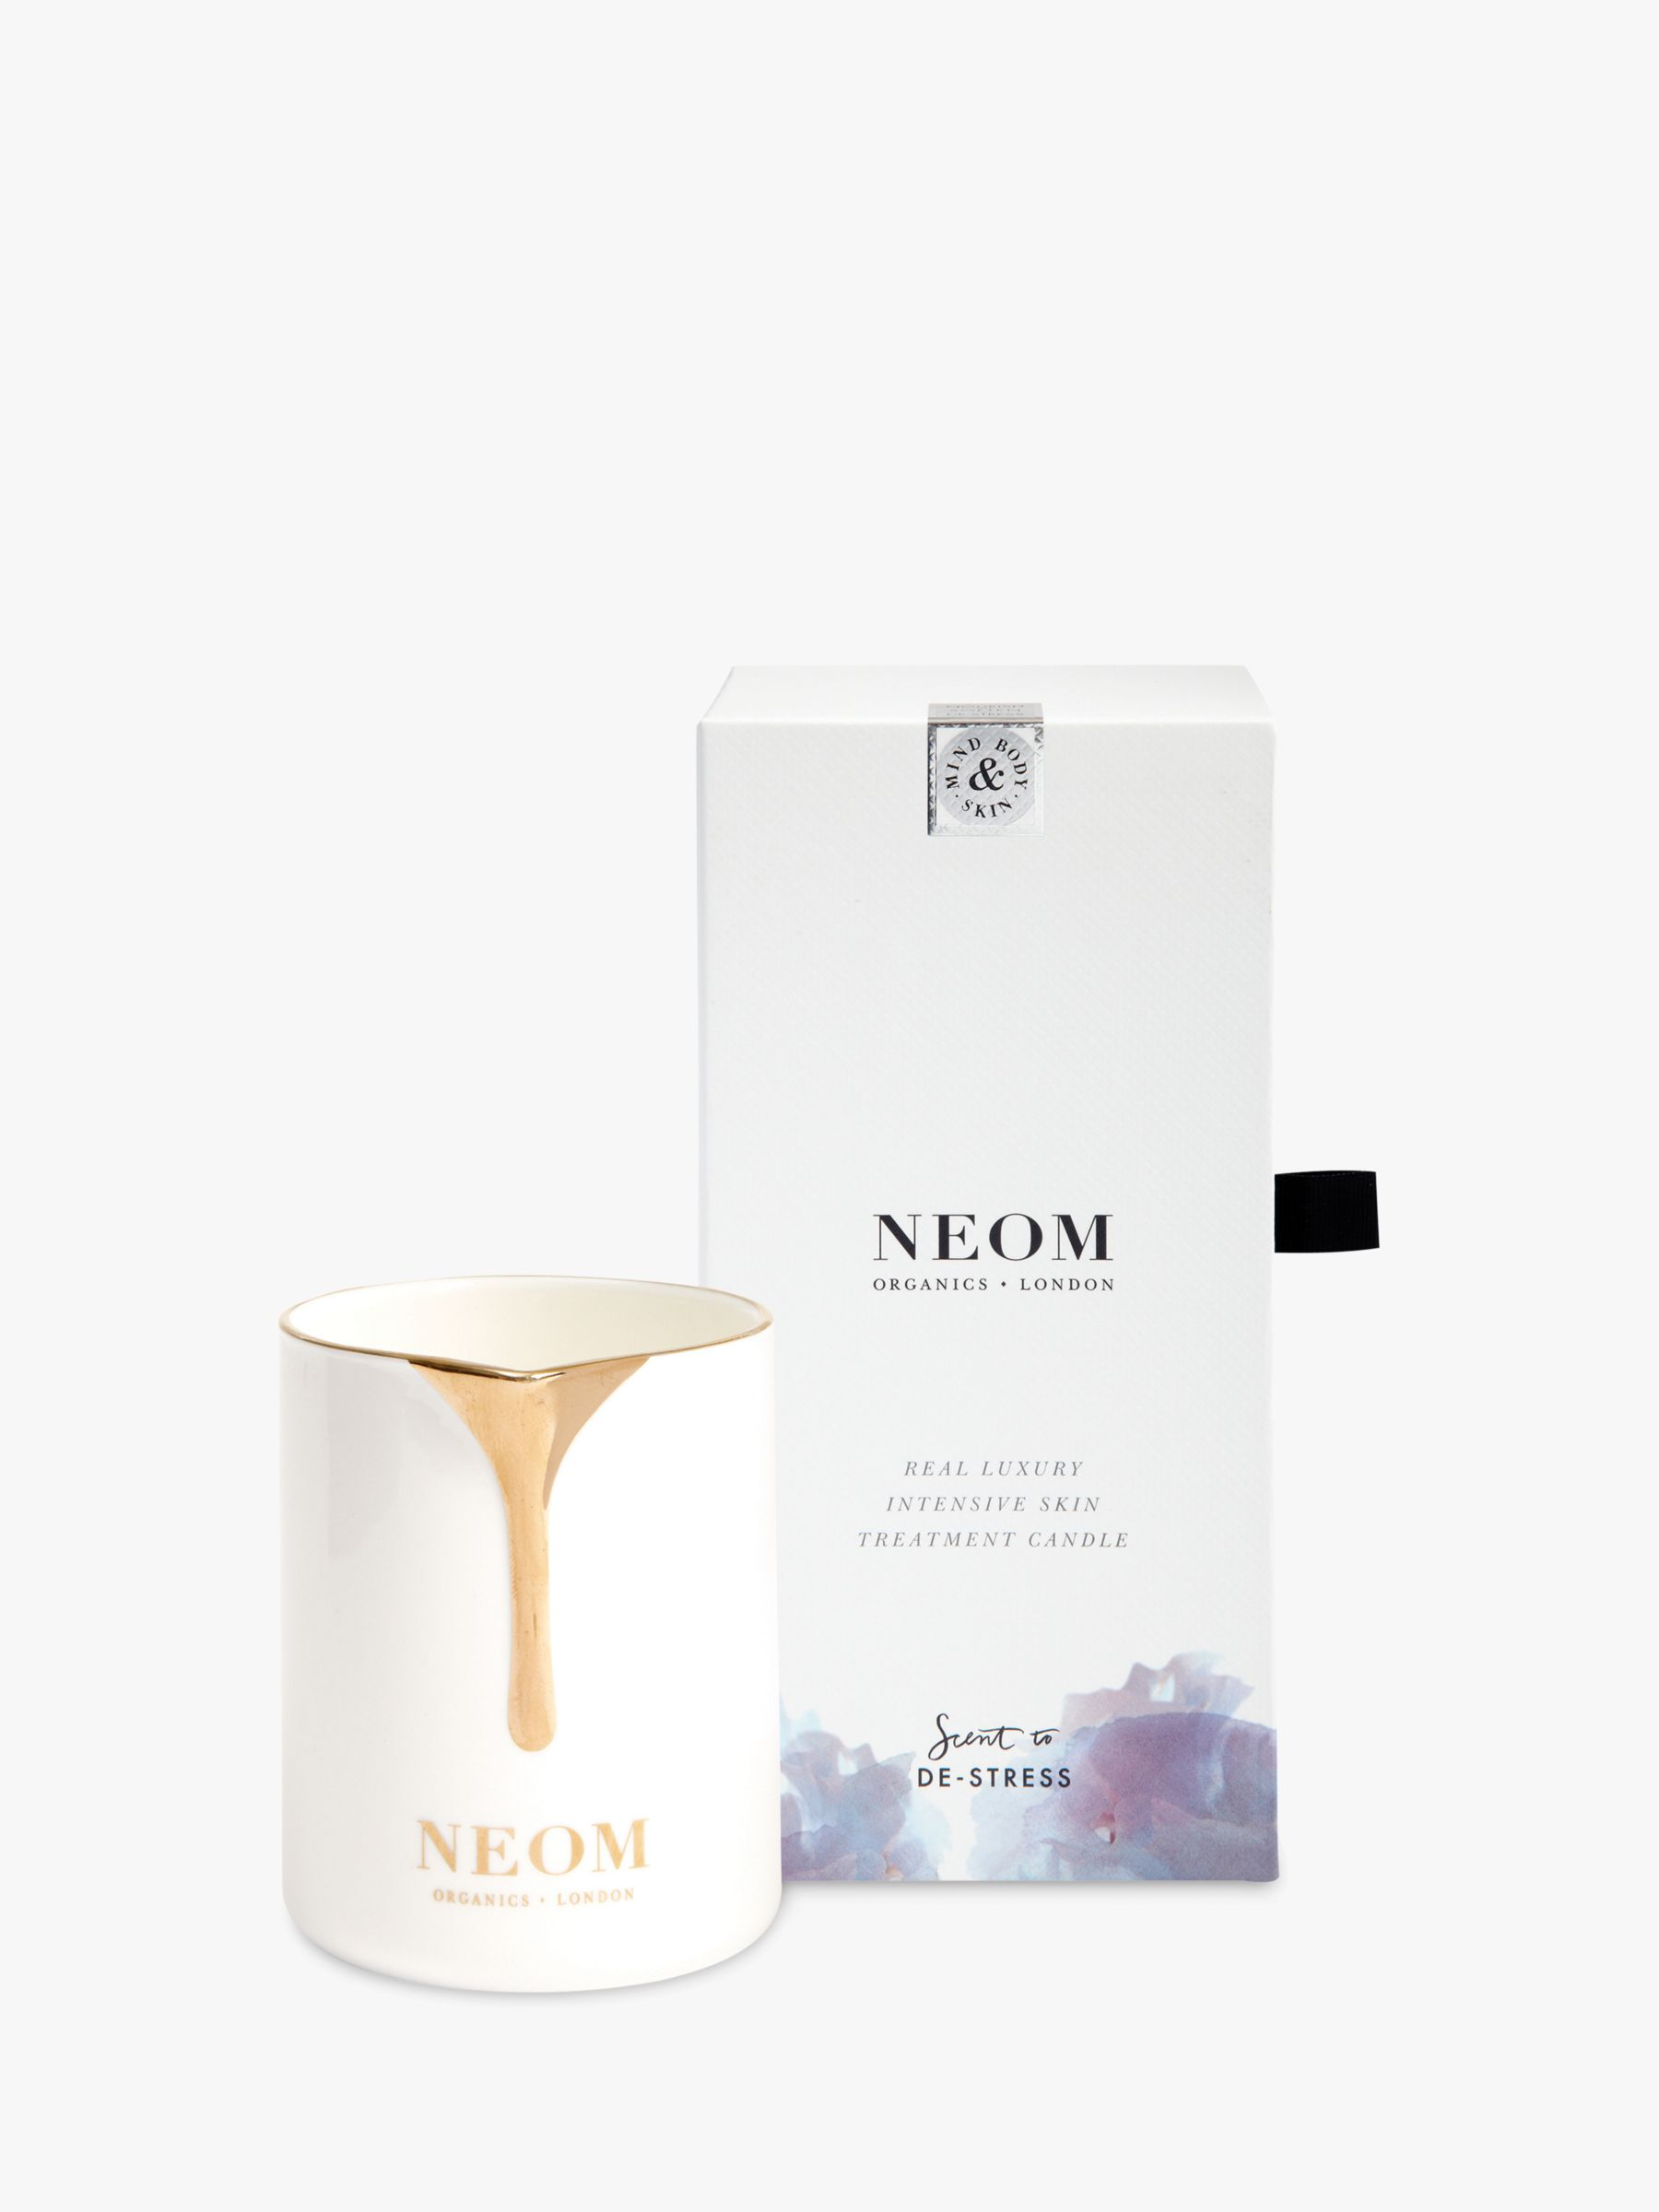 Neom Neom Real Luxury Skin Treatment Candle